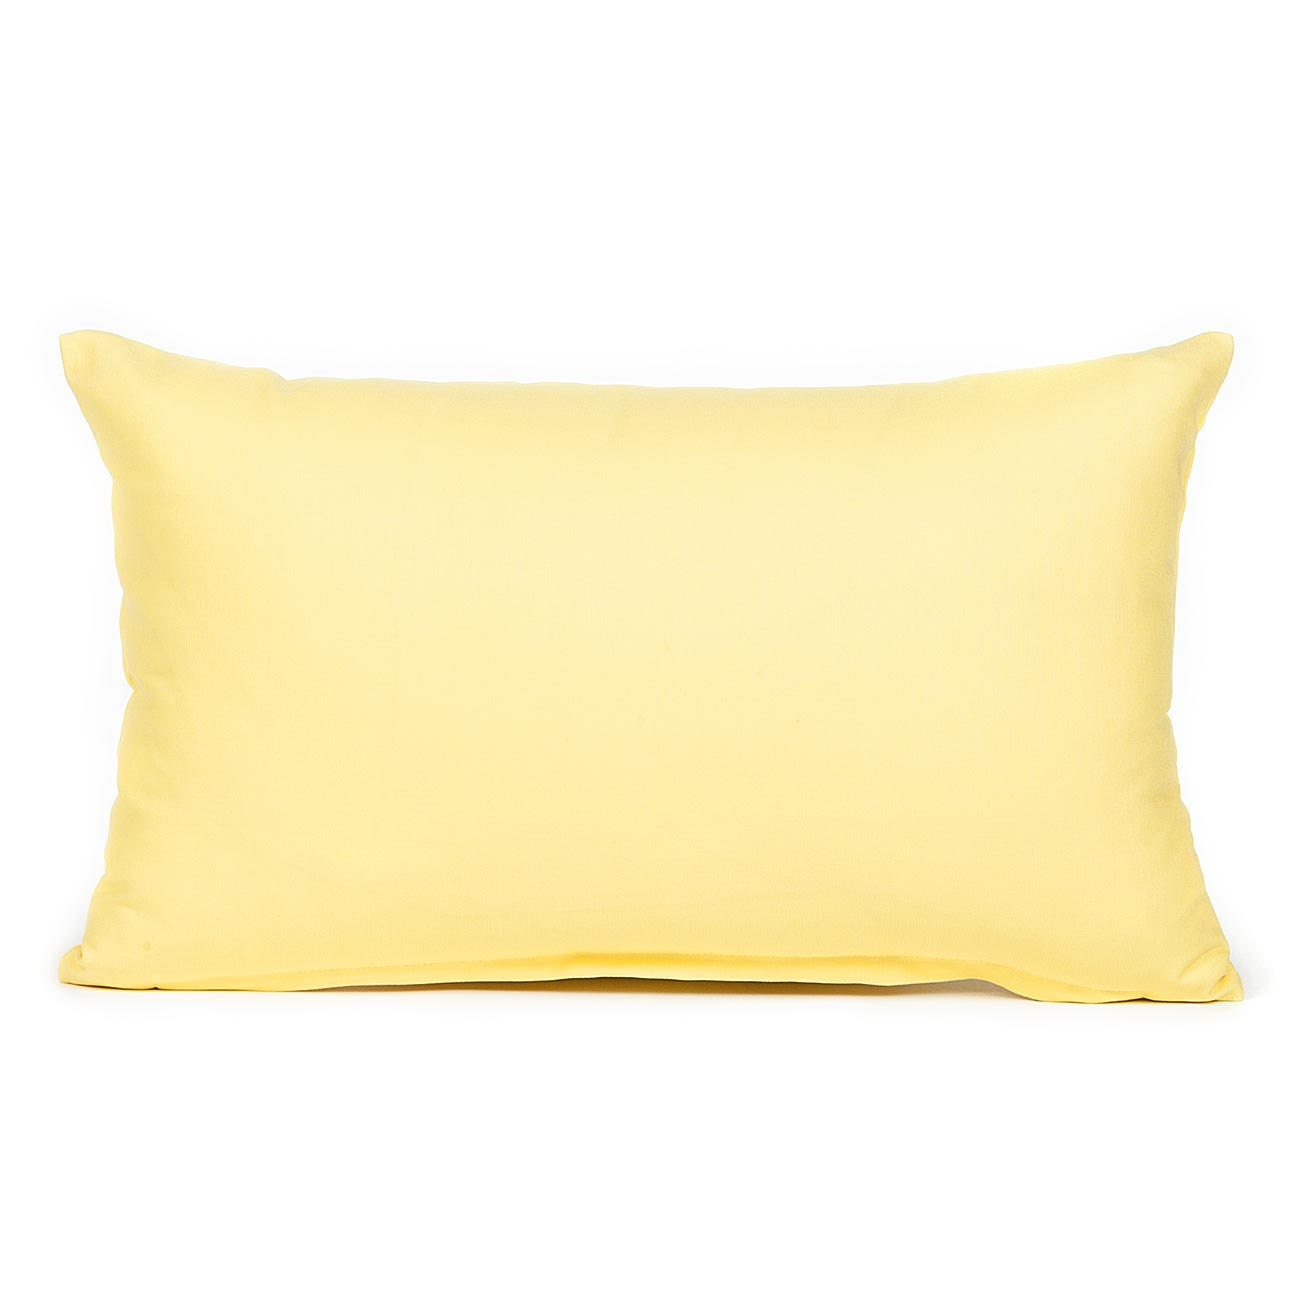 Throw Pillows 20 X 12 Yellow : 12 X 20 Solid Yellow Oblong Throw Pillow Cover by BHDecor on Etsy